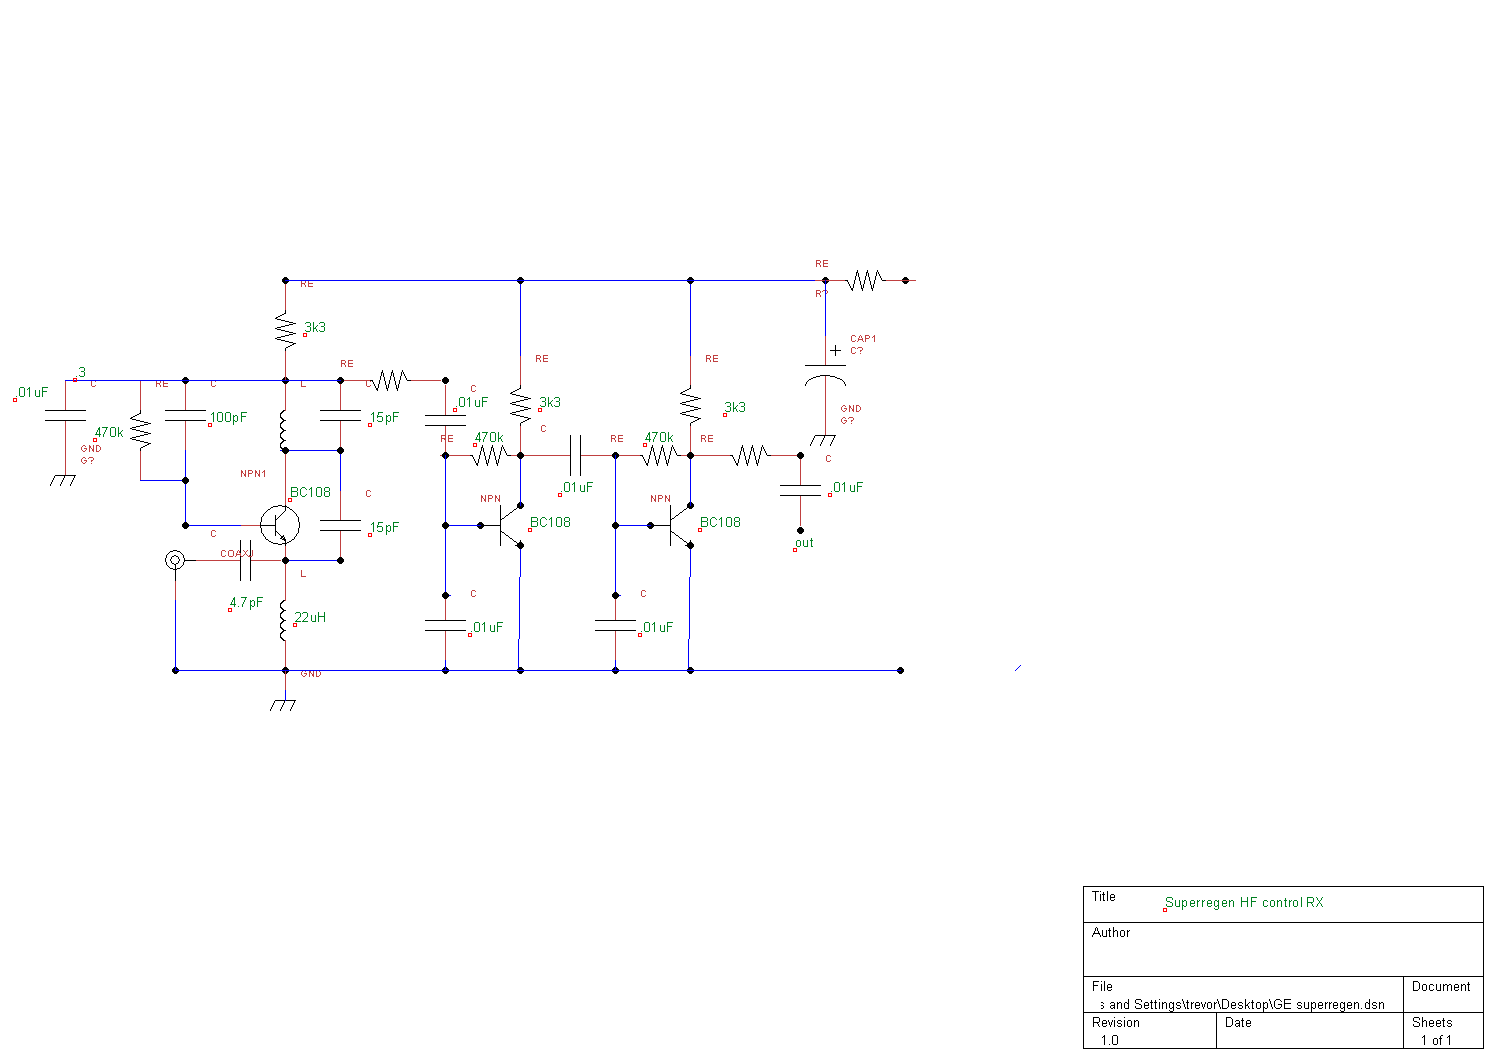 Electronic Circuit Schematics Single Chip Fm Transmitter Diagram For Superregenerative Receiver Built By Ge Labs